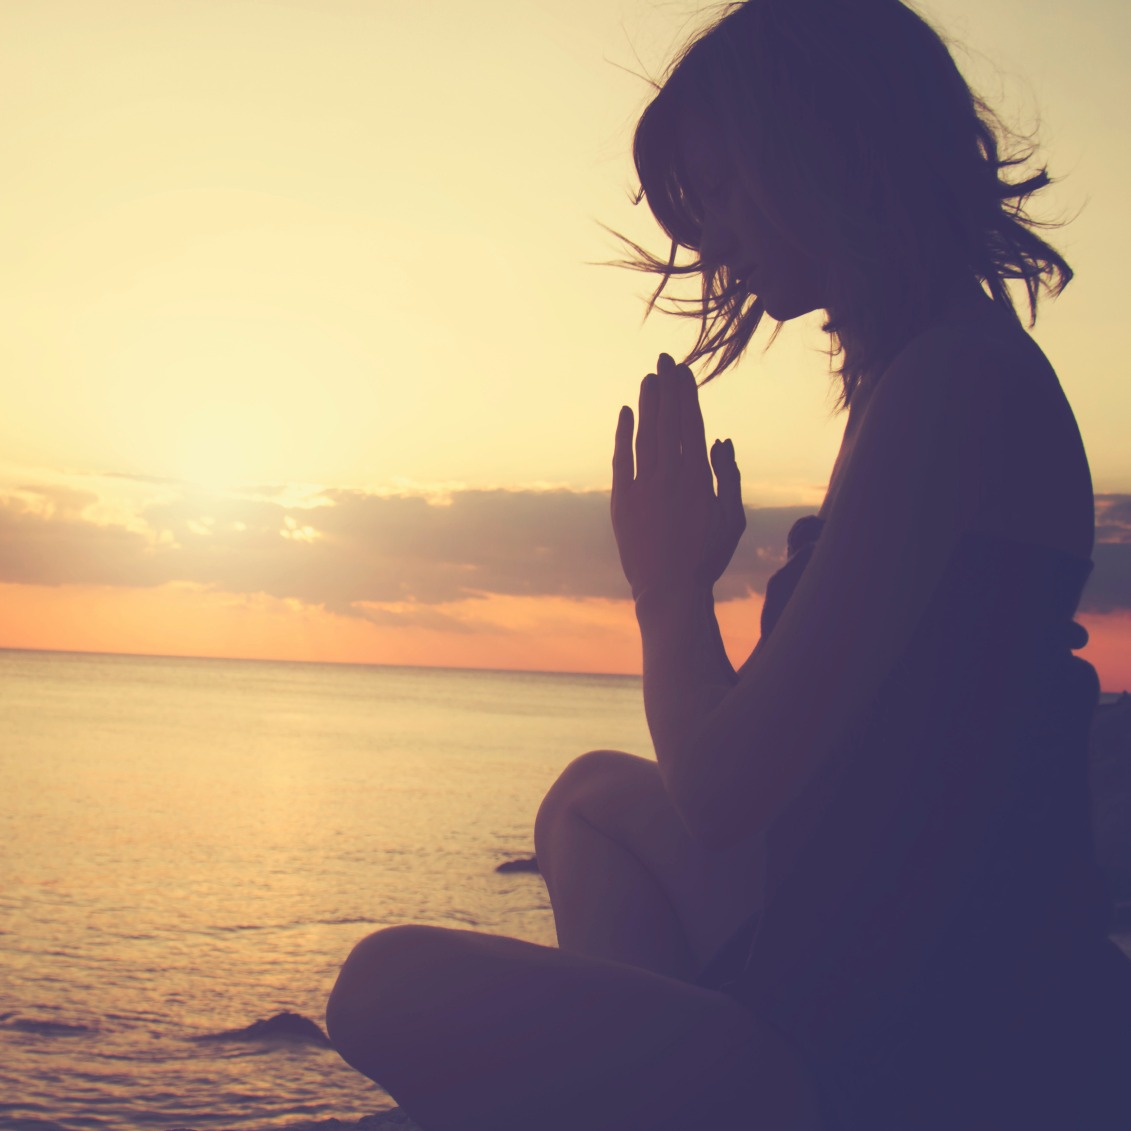 10 Zen-Based Habits To Motivate You